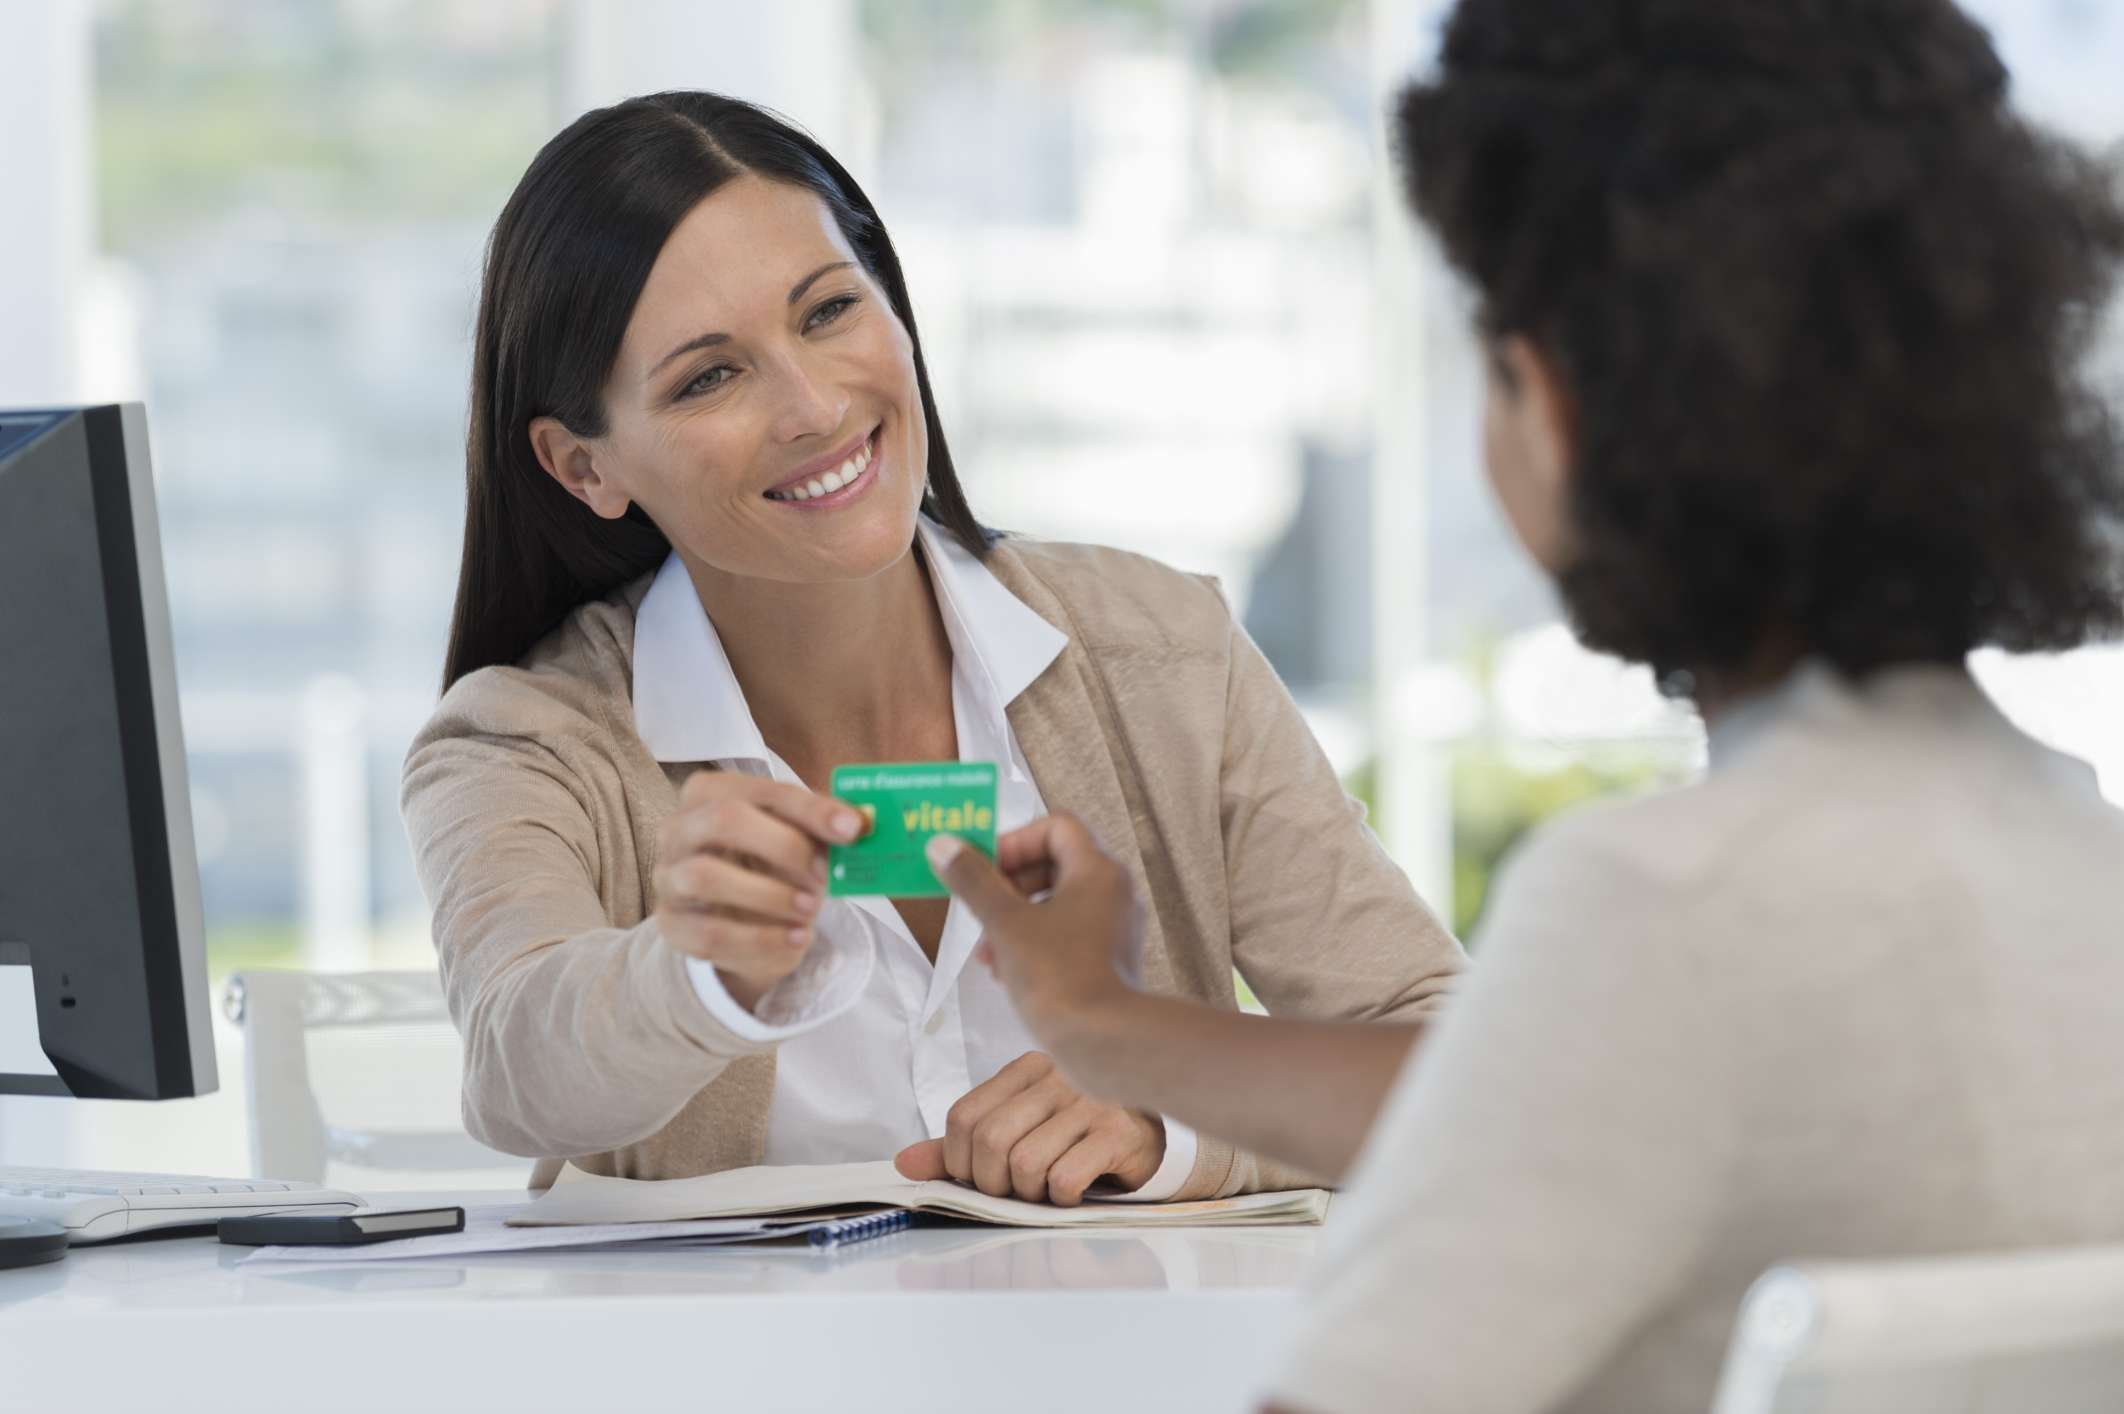 Receptionist giving insurance card to patient